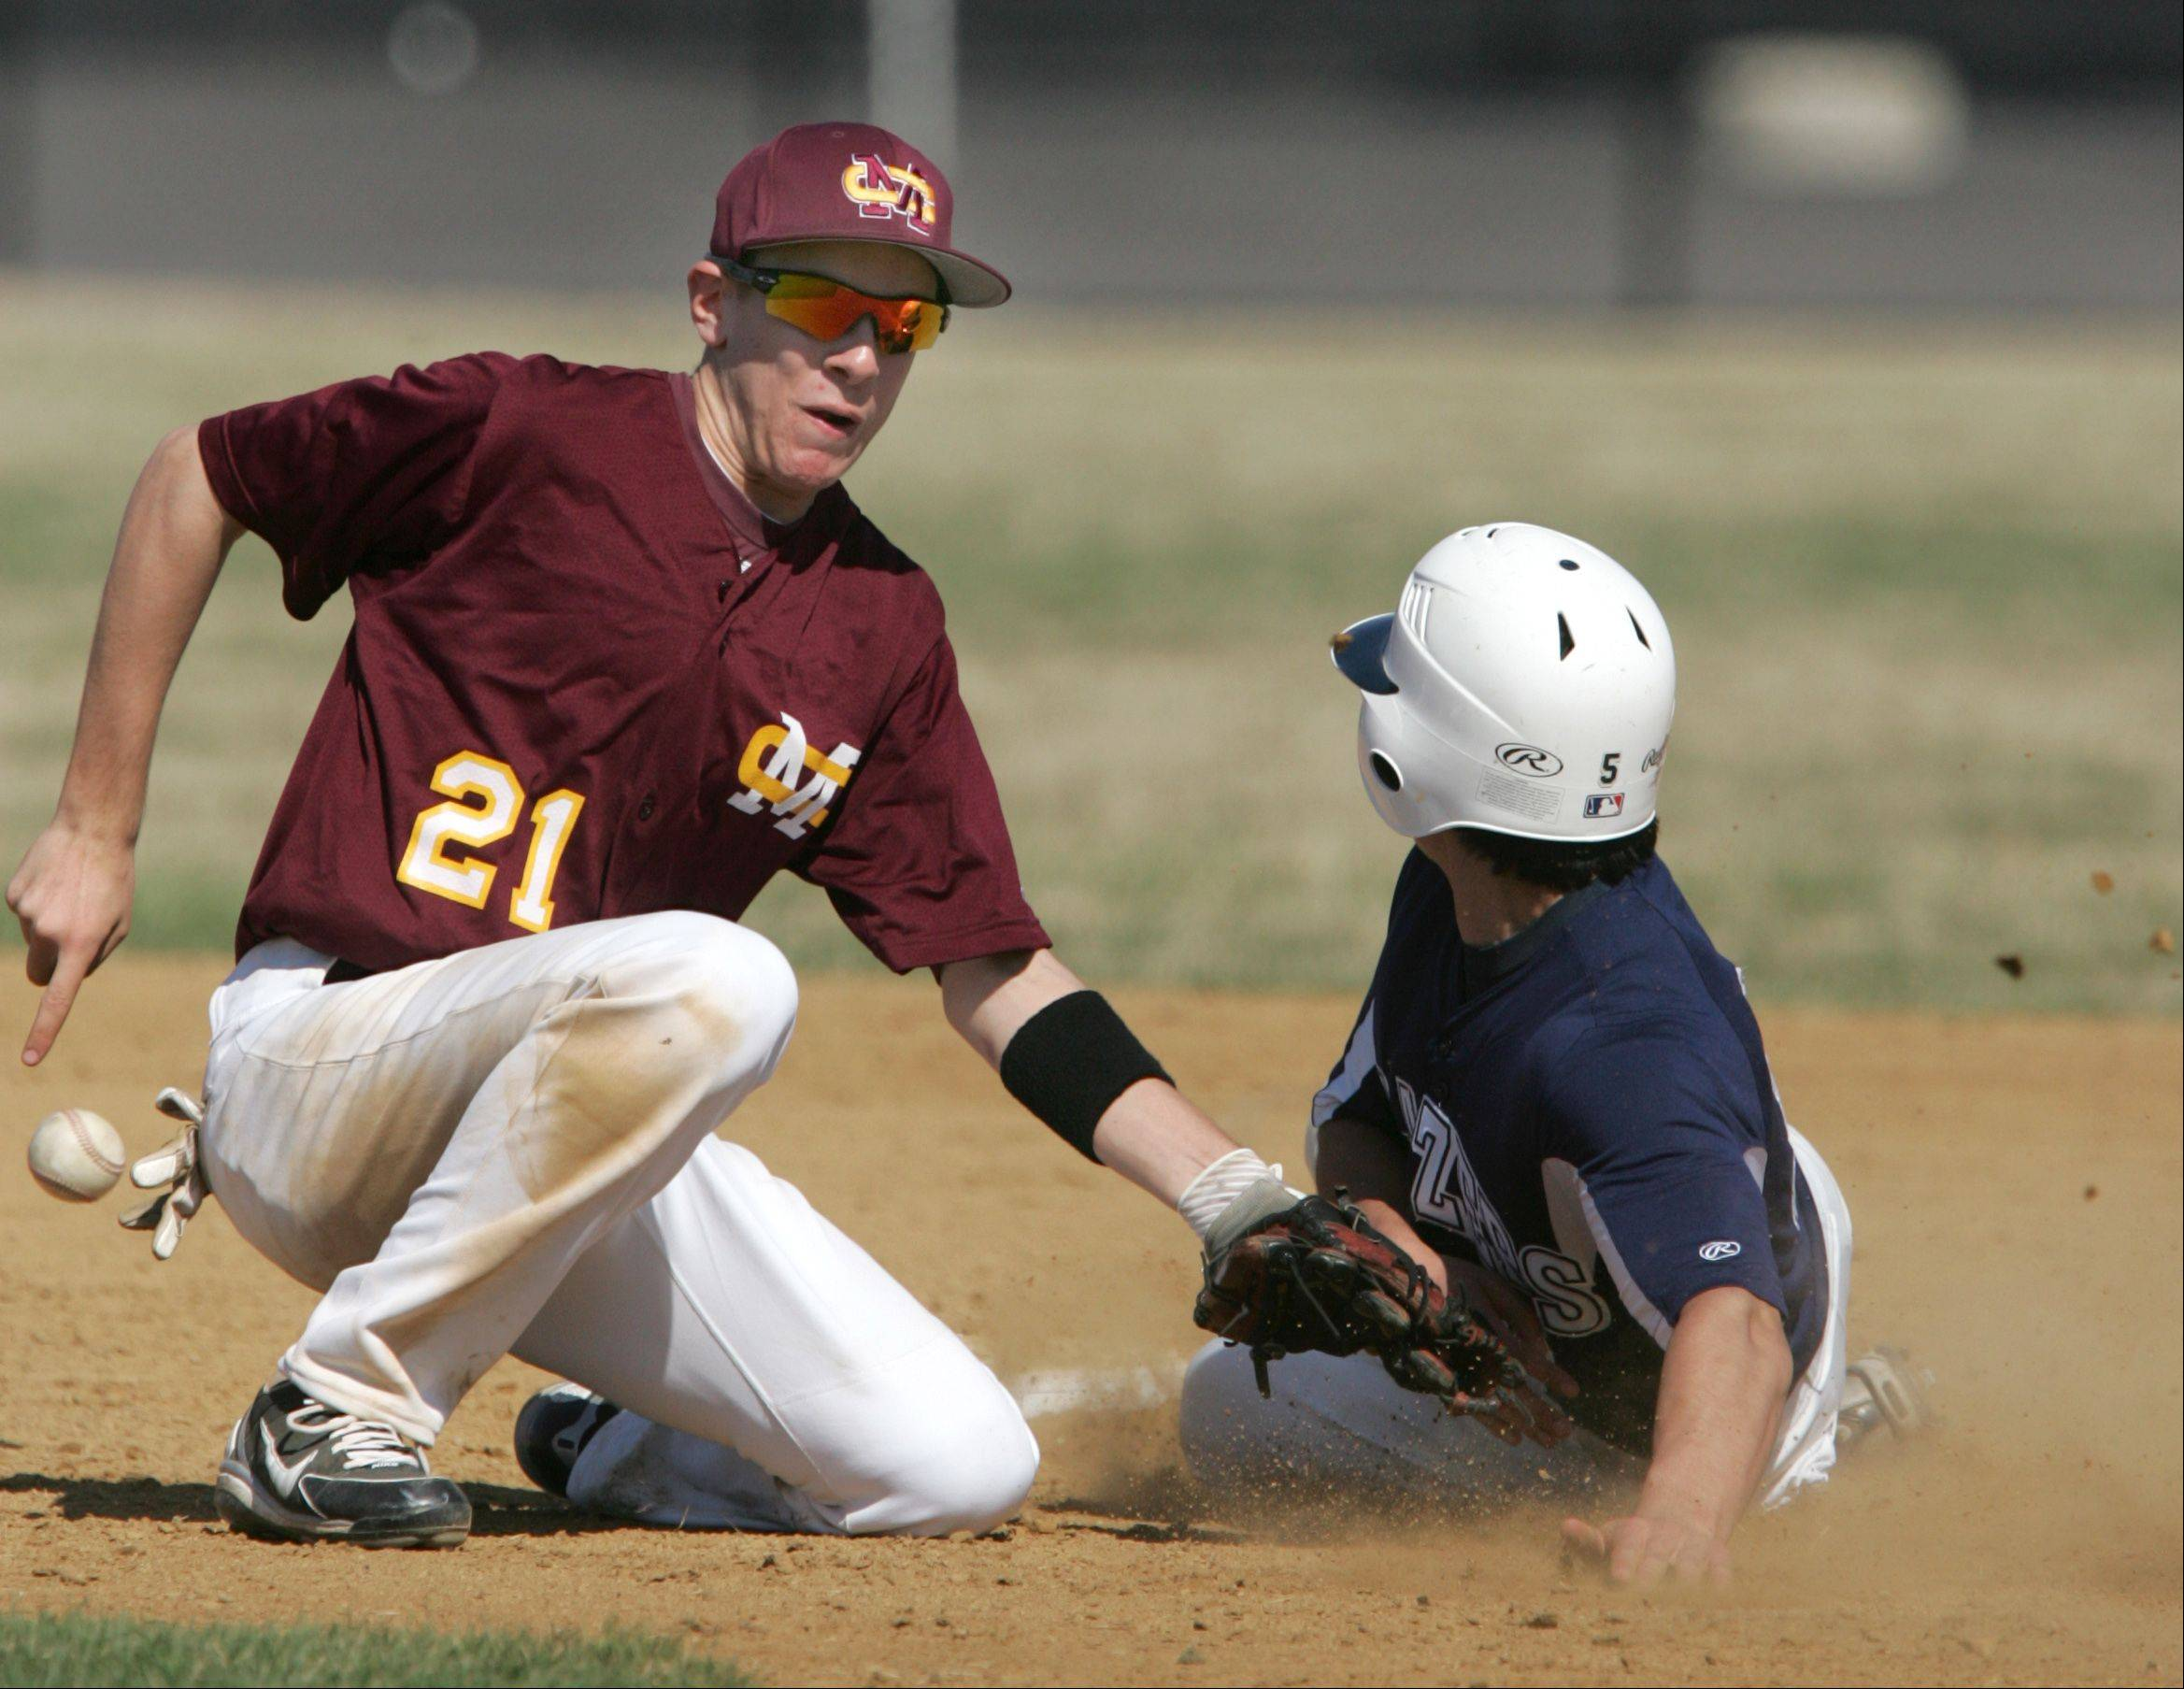 Addison Trail runner Carlos Dorado steals second base and advances to third as Montini's Eddie Bava, 21, tries to come up with the ball.